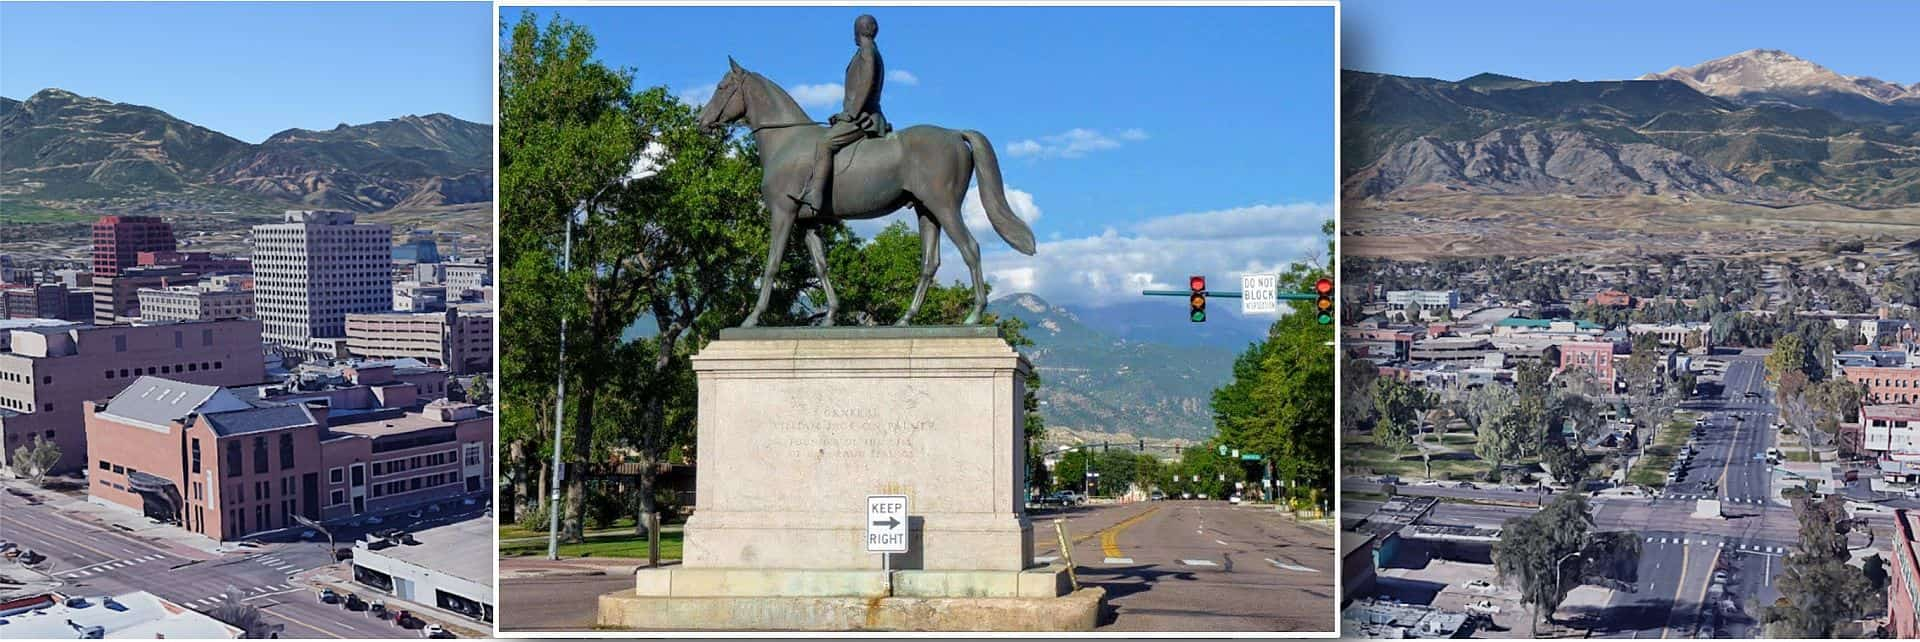 Street view of General Palmer statue with mountains in background